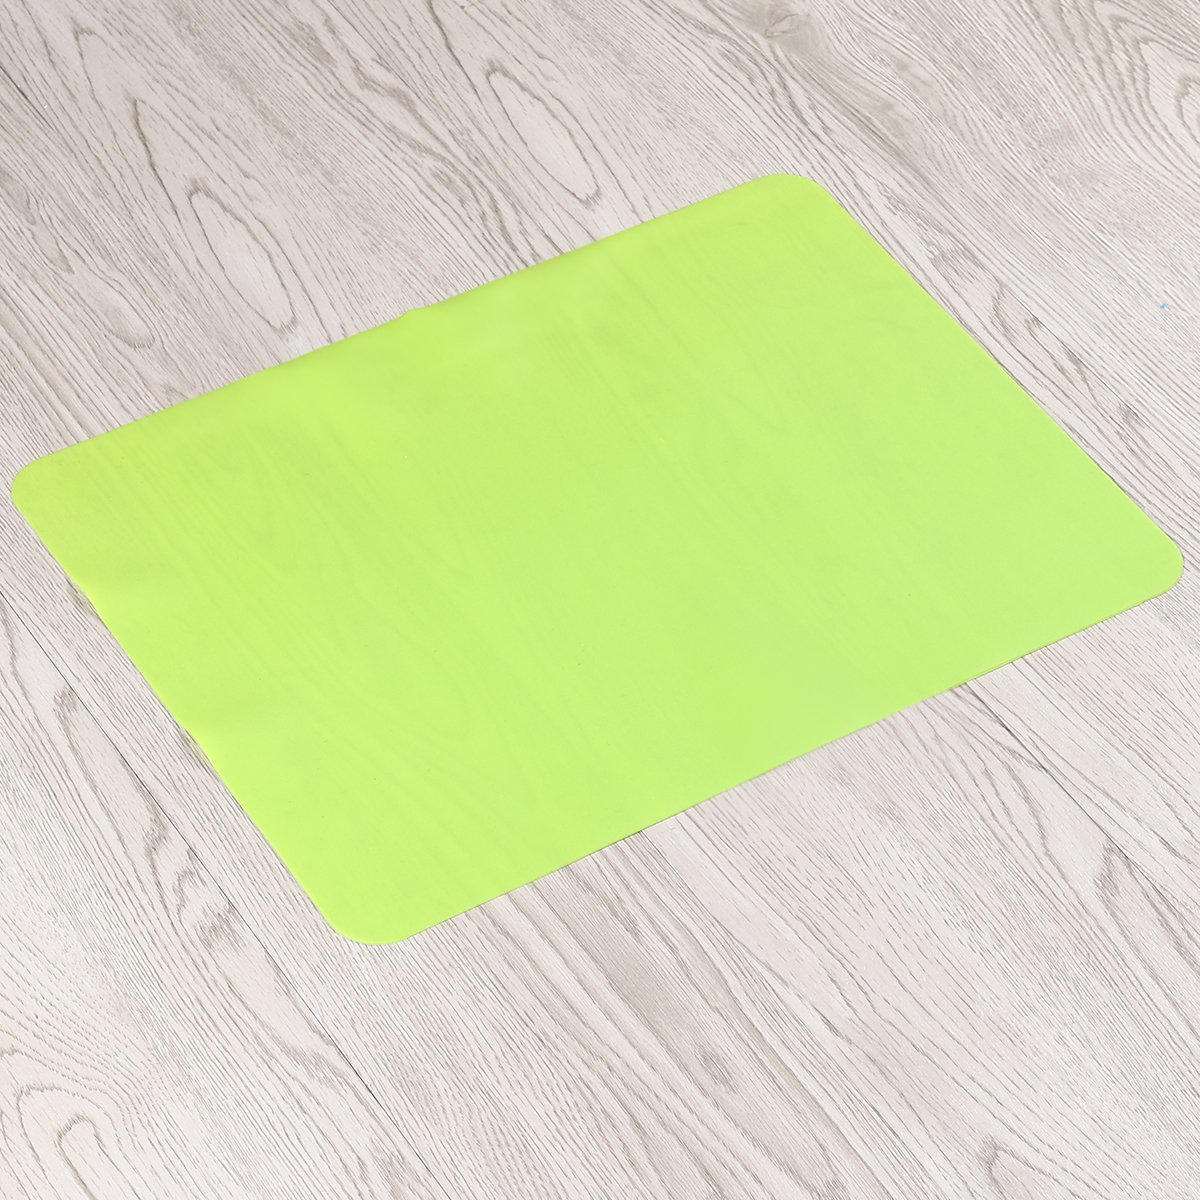 BESTOMZ Set de Table Silicone Antid/érapant Tapis de Table R/ésistant /à la Chaleur Vert 40 30cm